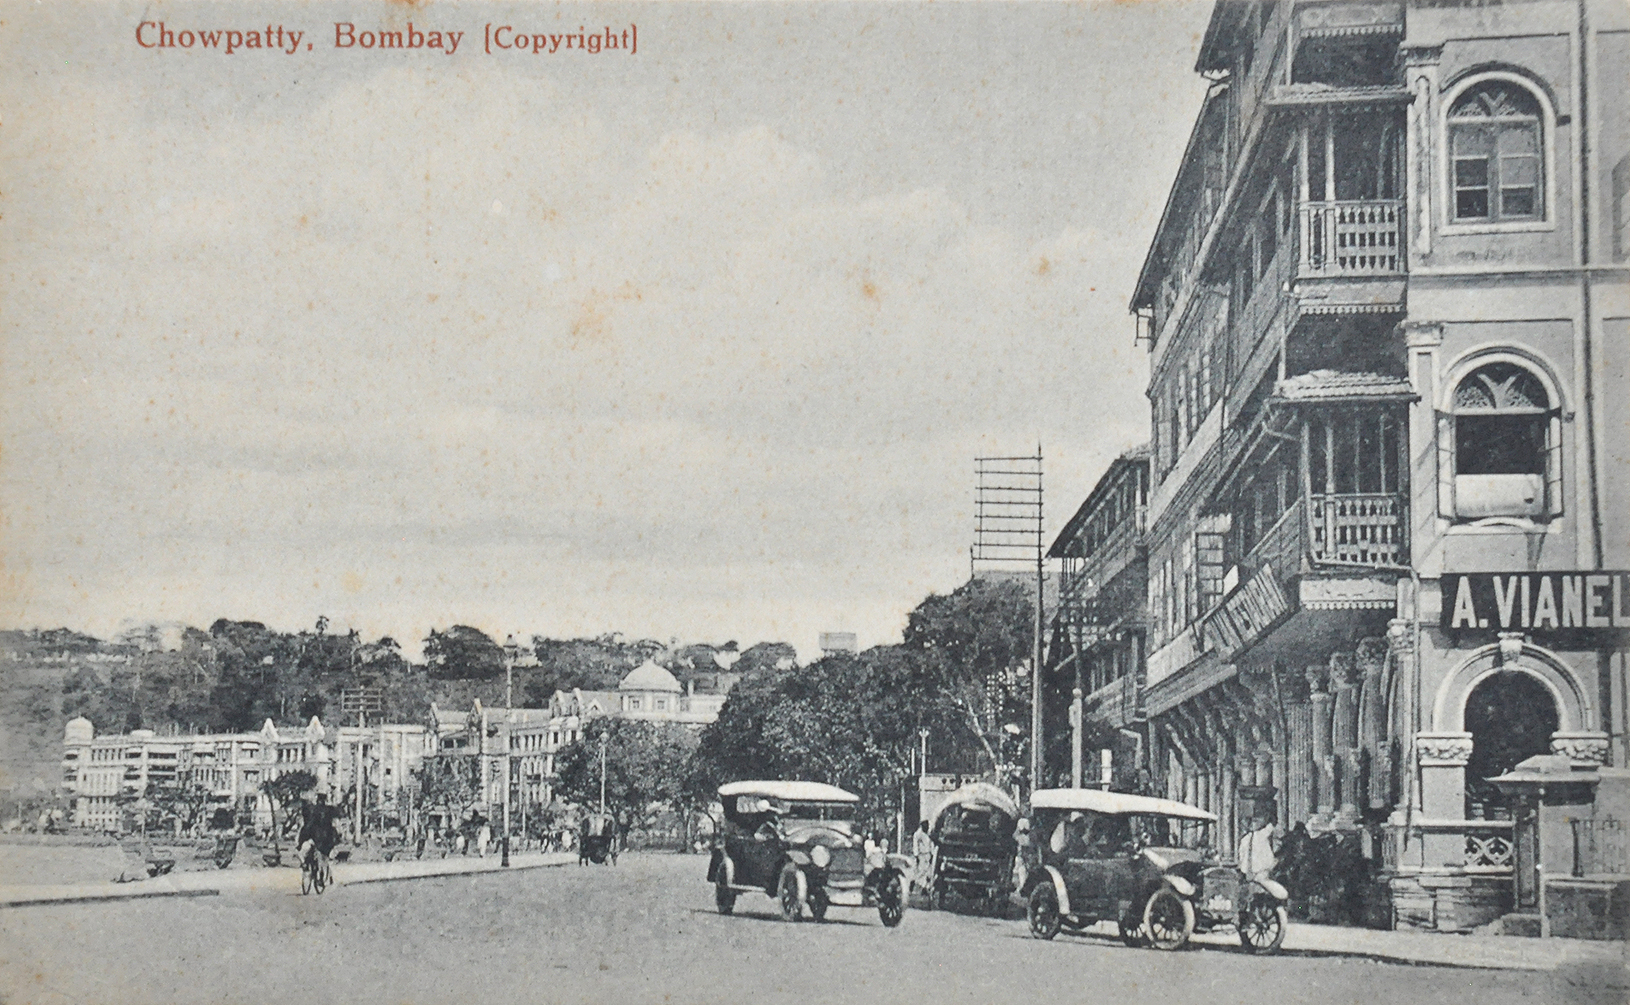 Early Vintage Cars In Bombay - 3 Old Postcards